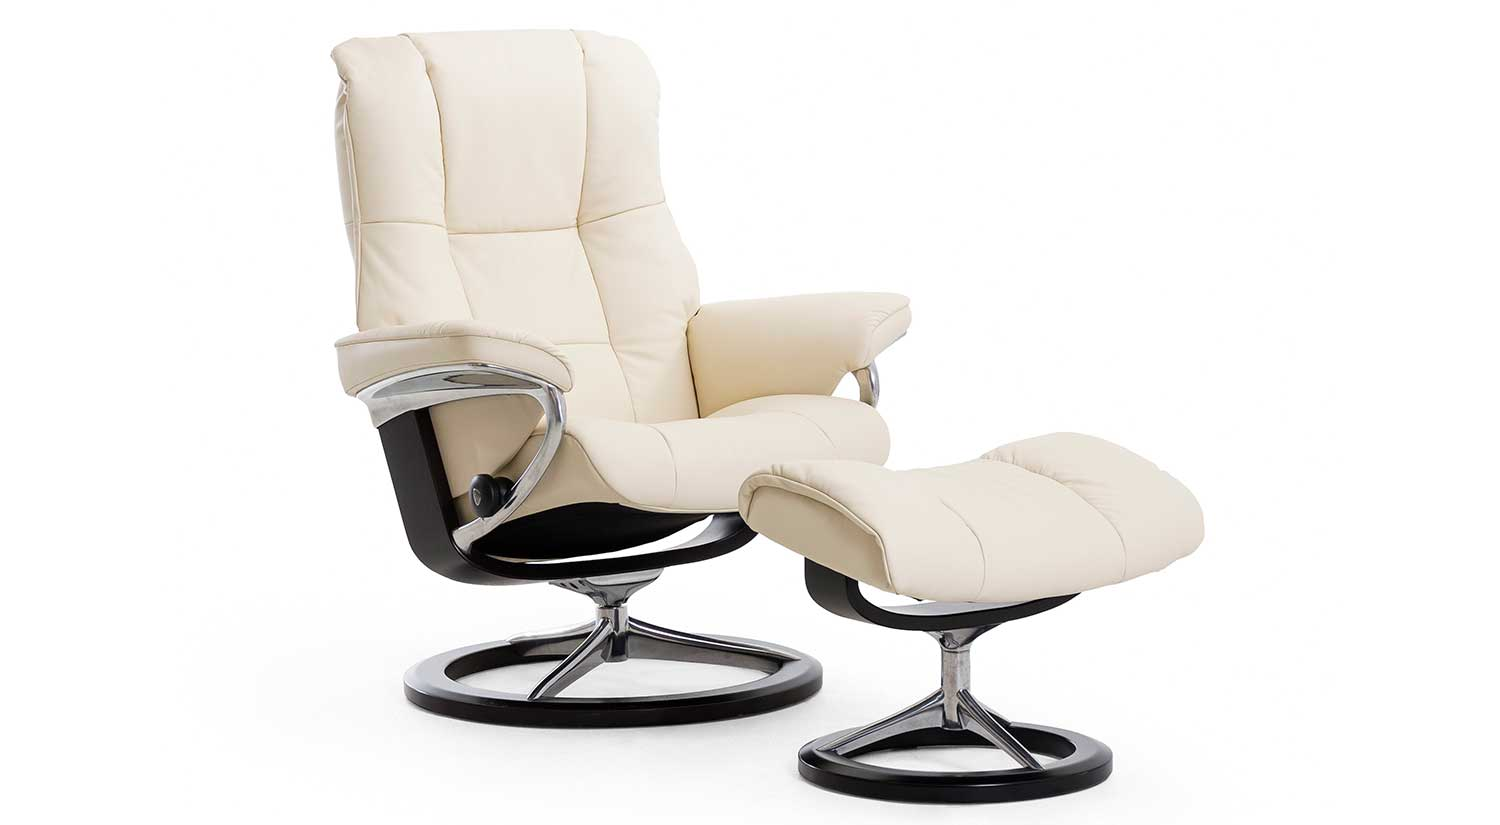 Stressless Chair Prices Stressless Jazz Recliner Price 28 Images Stressless